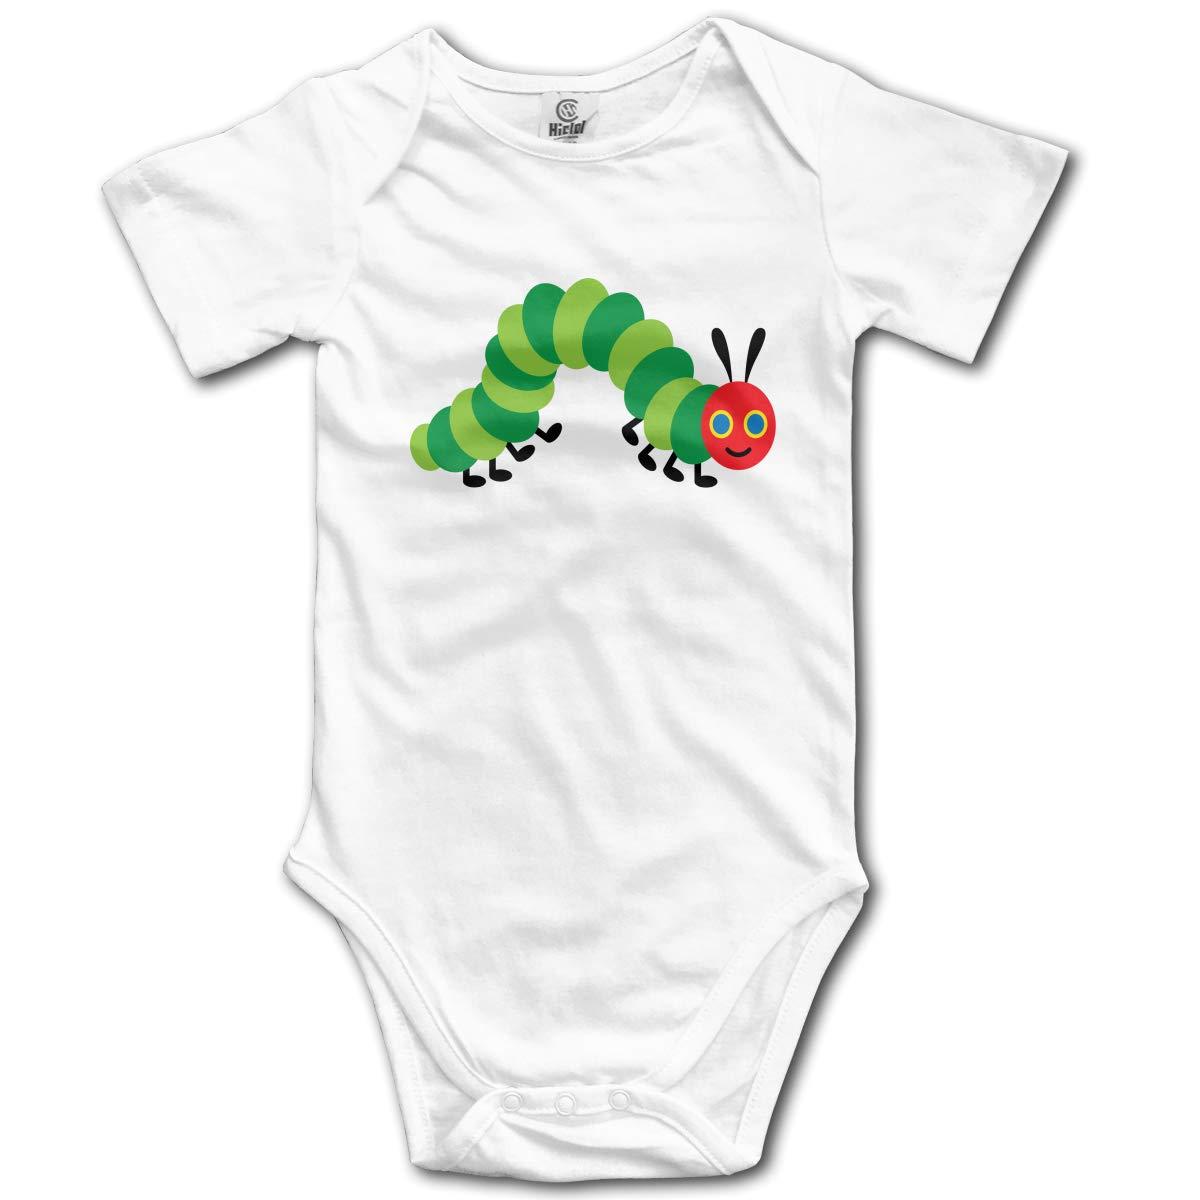 The Very Hungry Caterpillar Newbaby Baby Romper Summer Short Sleeve Jumpsuit Novelty Funny Gift